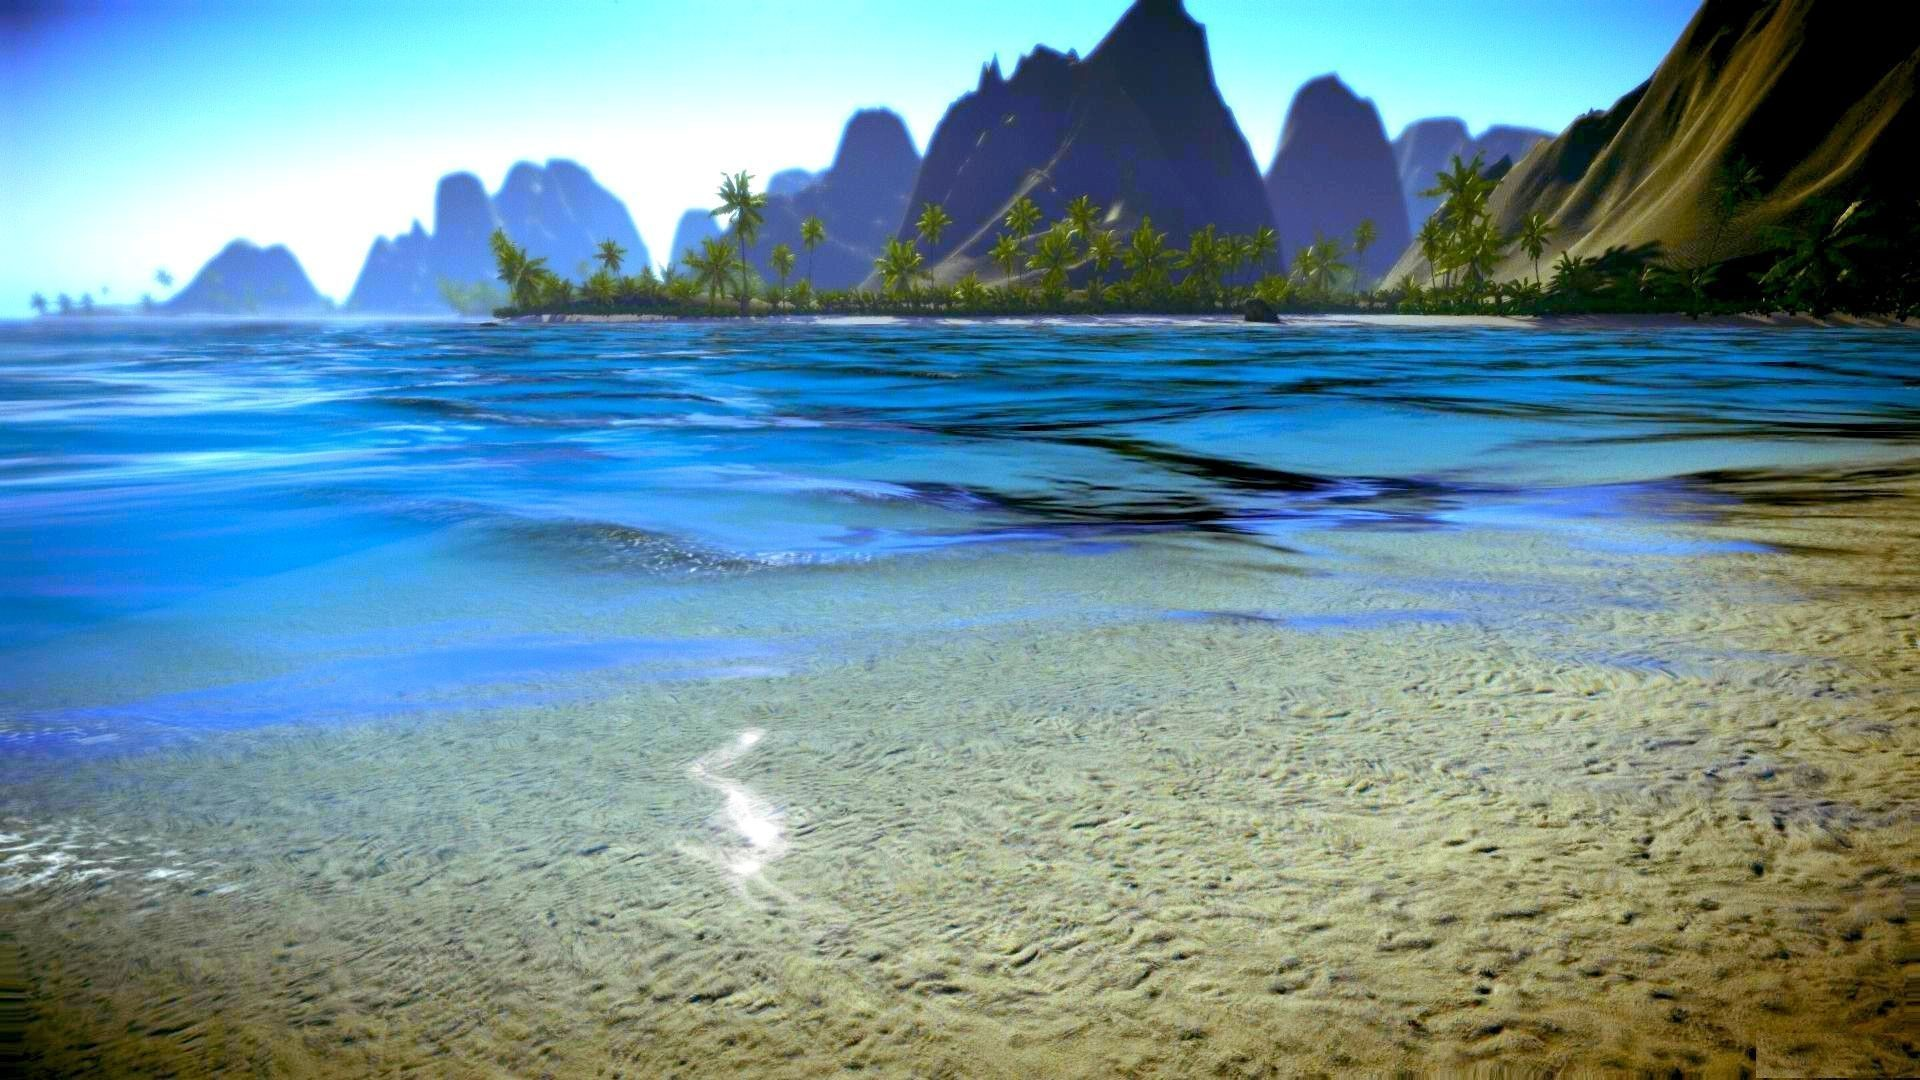 Res: 1920x1080, Top summer-wallpaper - Designs and Decors   Designs and Decors